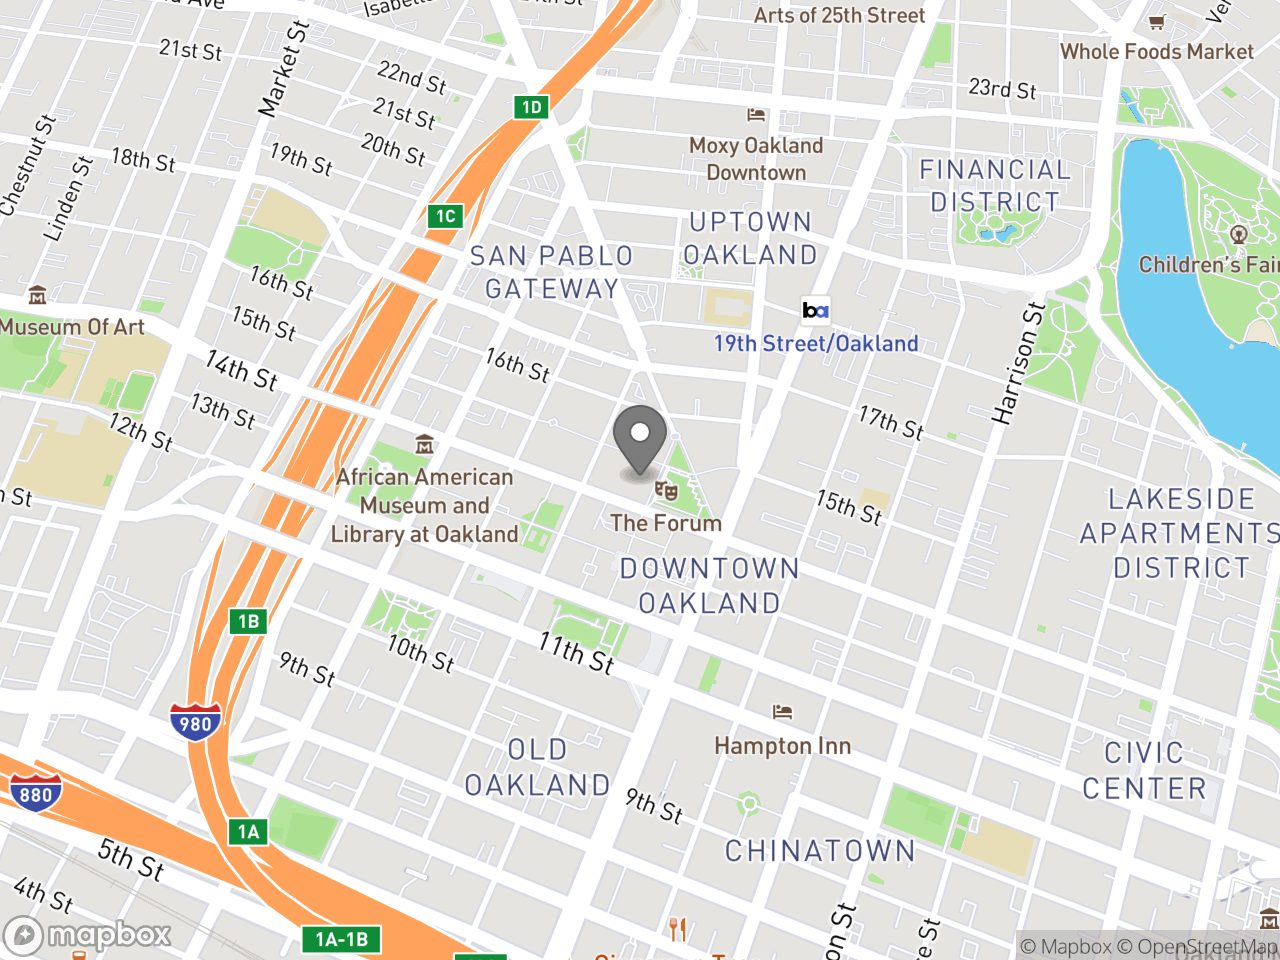 Map location for Public Safety and Services Violence Prevention Oversight Commission for September 24, 2018, located at 1 Frank H Ogawa Plaza in Oakland, CA 94612